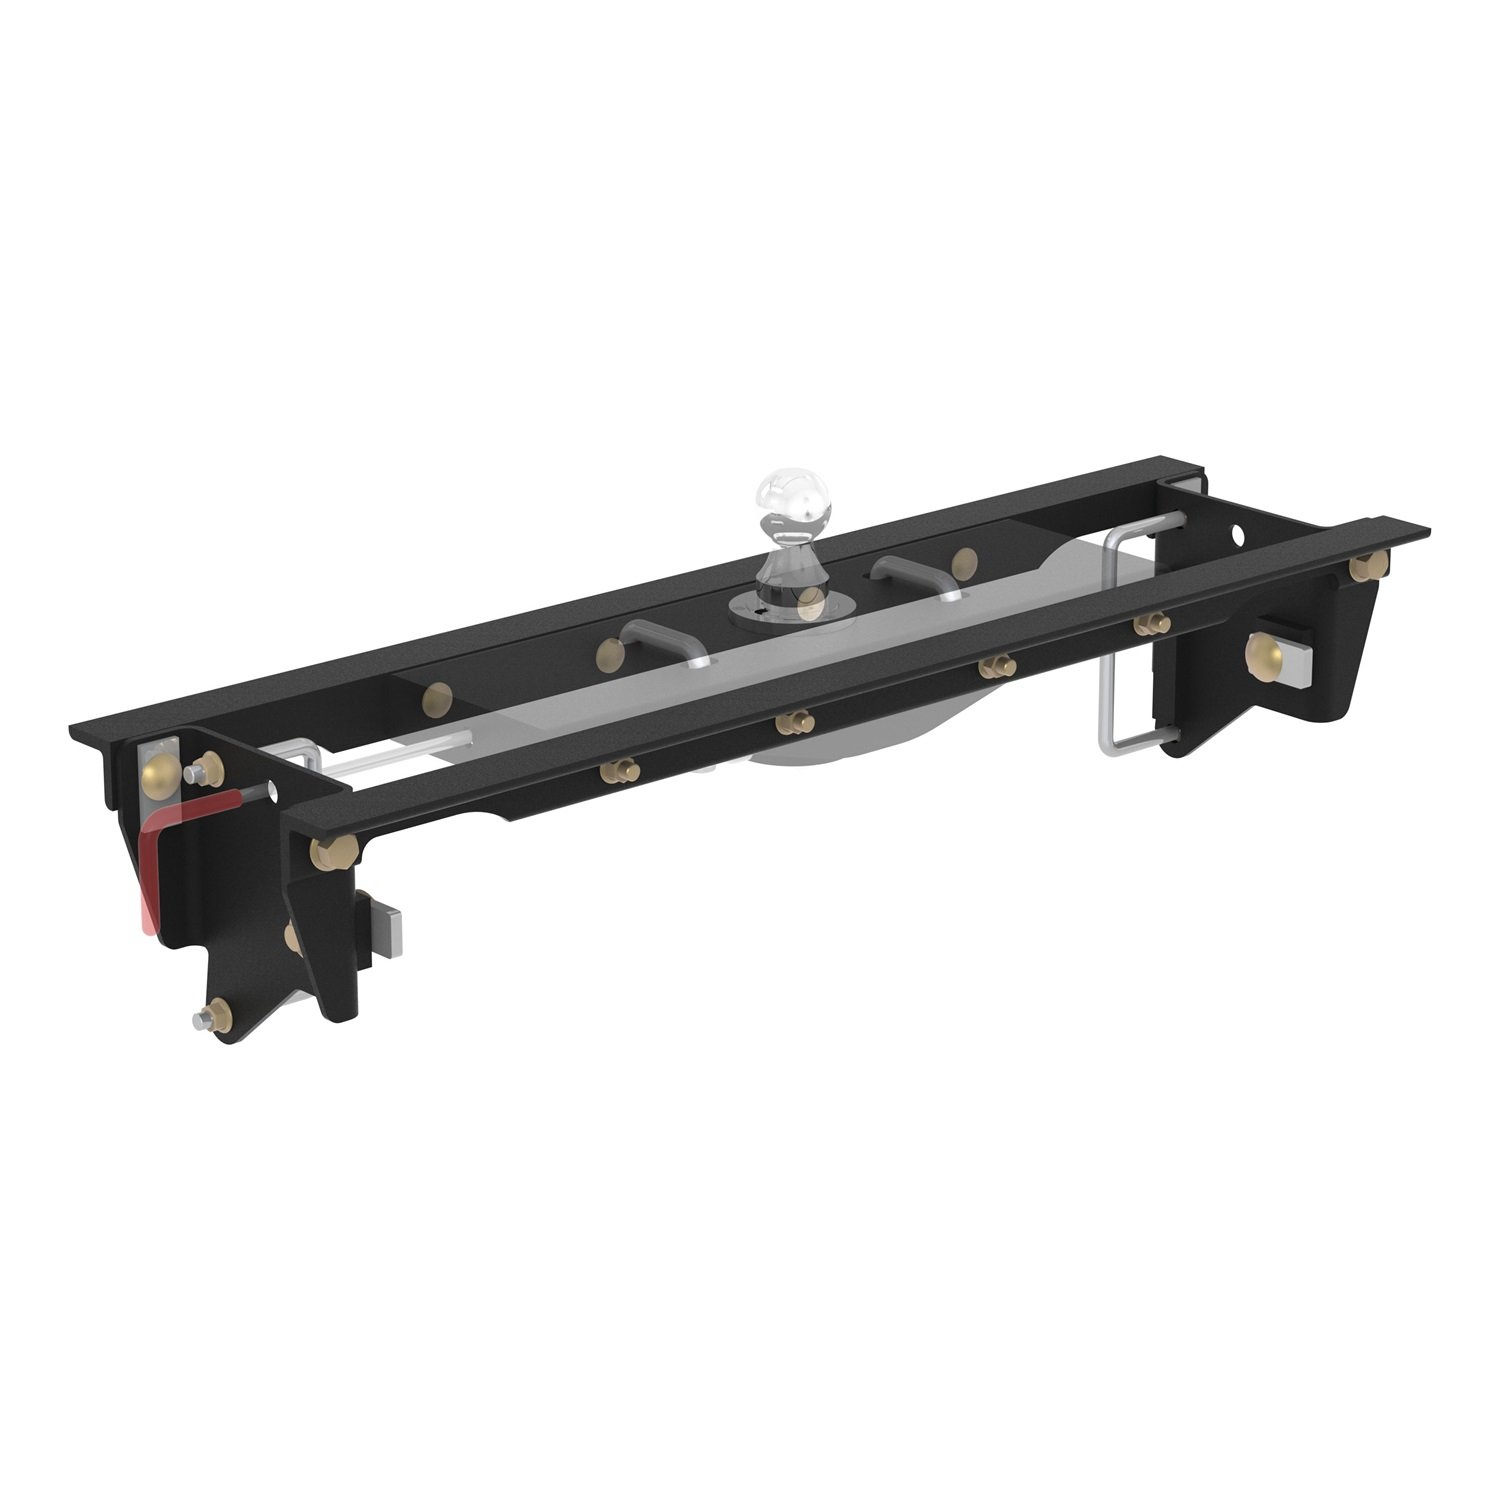 CURT 60647 Double Lock EZr Gooseneck Hitch Installation Brackets for Select Ford F-250, F-350 Super Duty